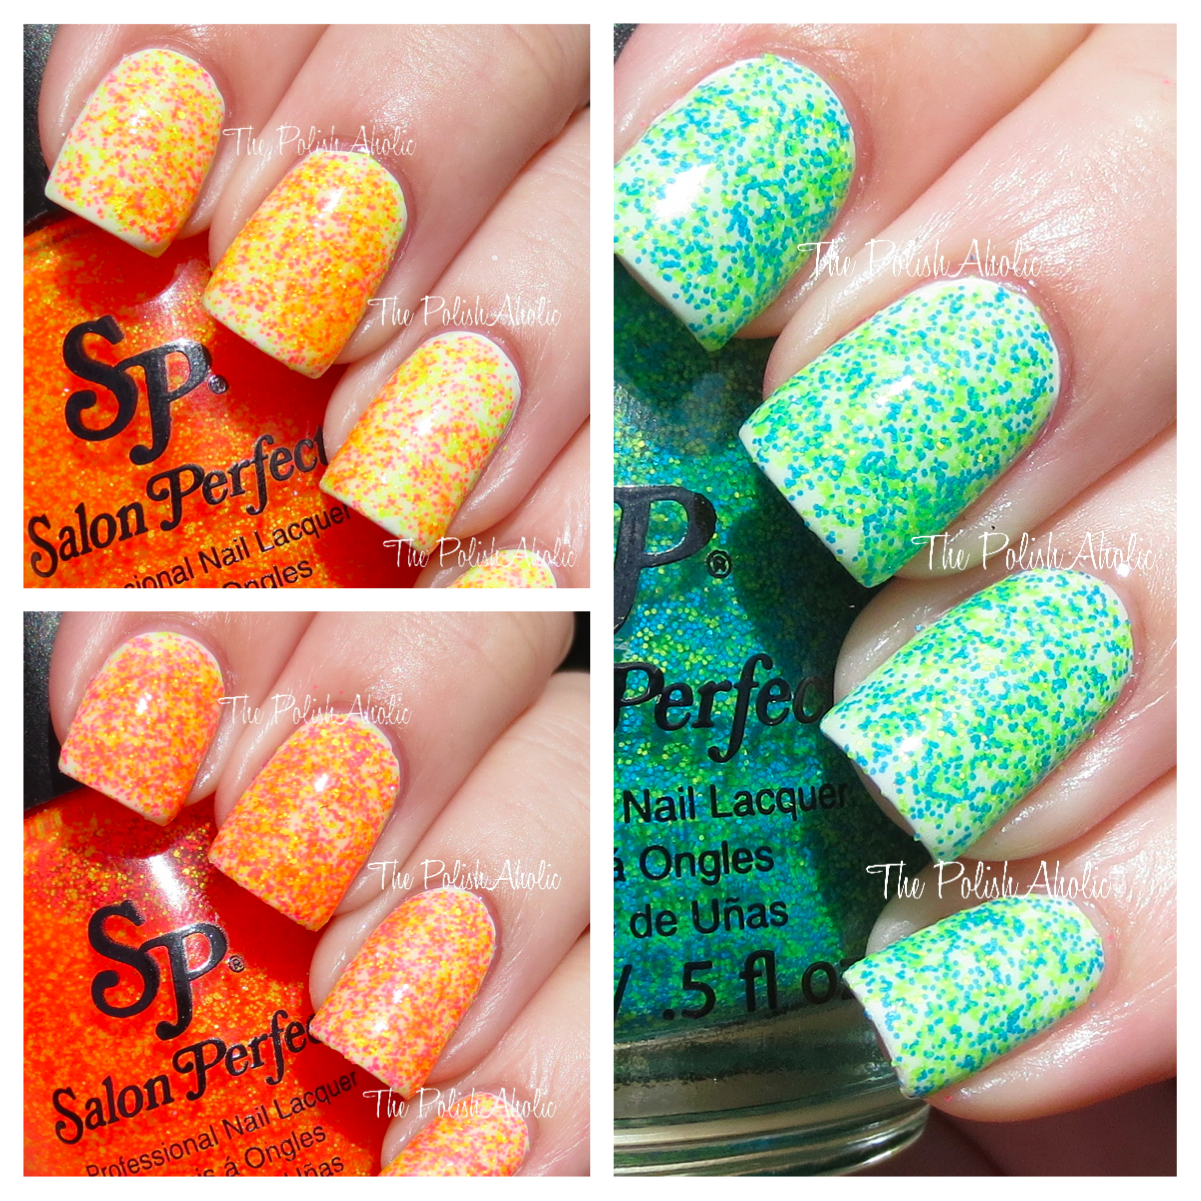 The PolishAholic: Salon Perfect Neon Collision Collection Swatches